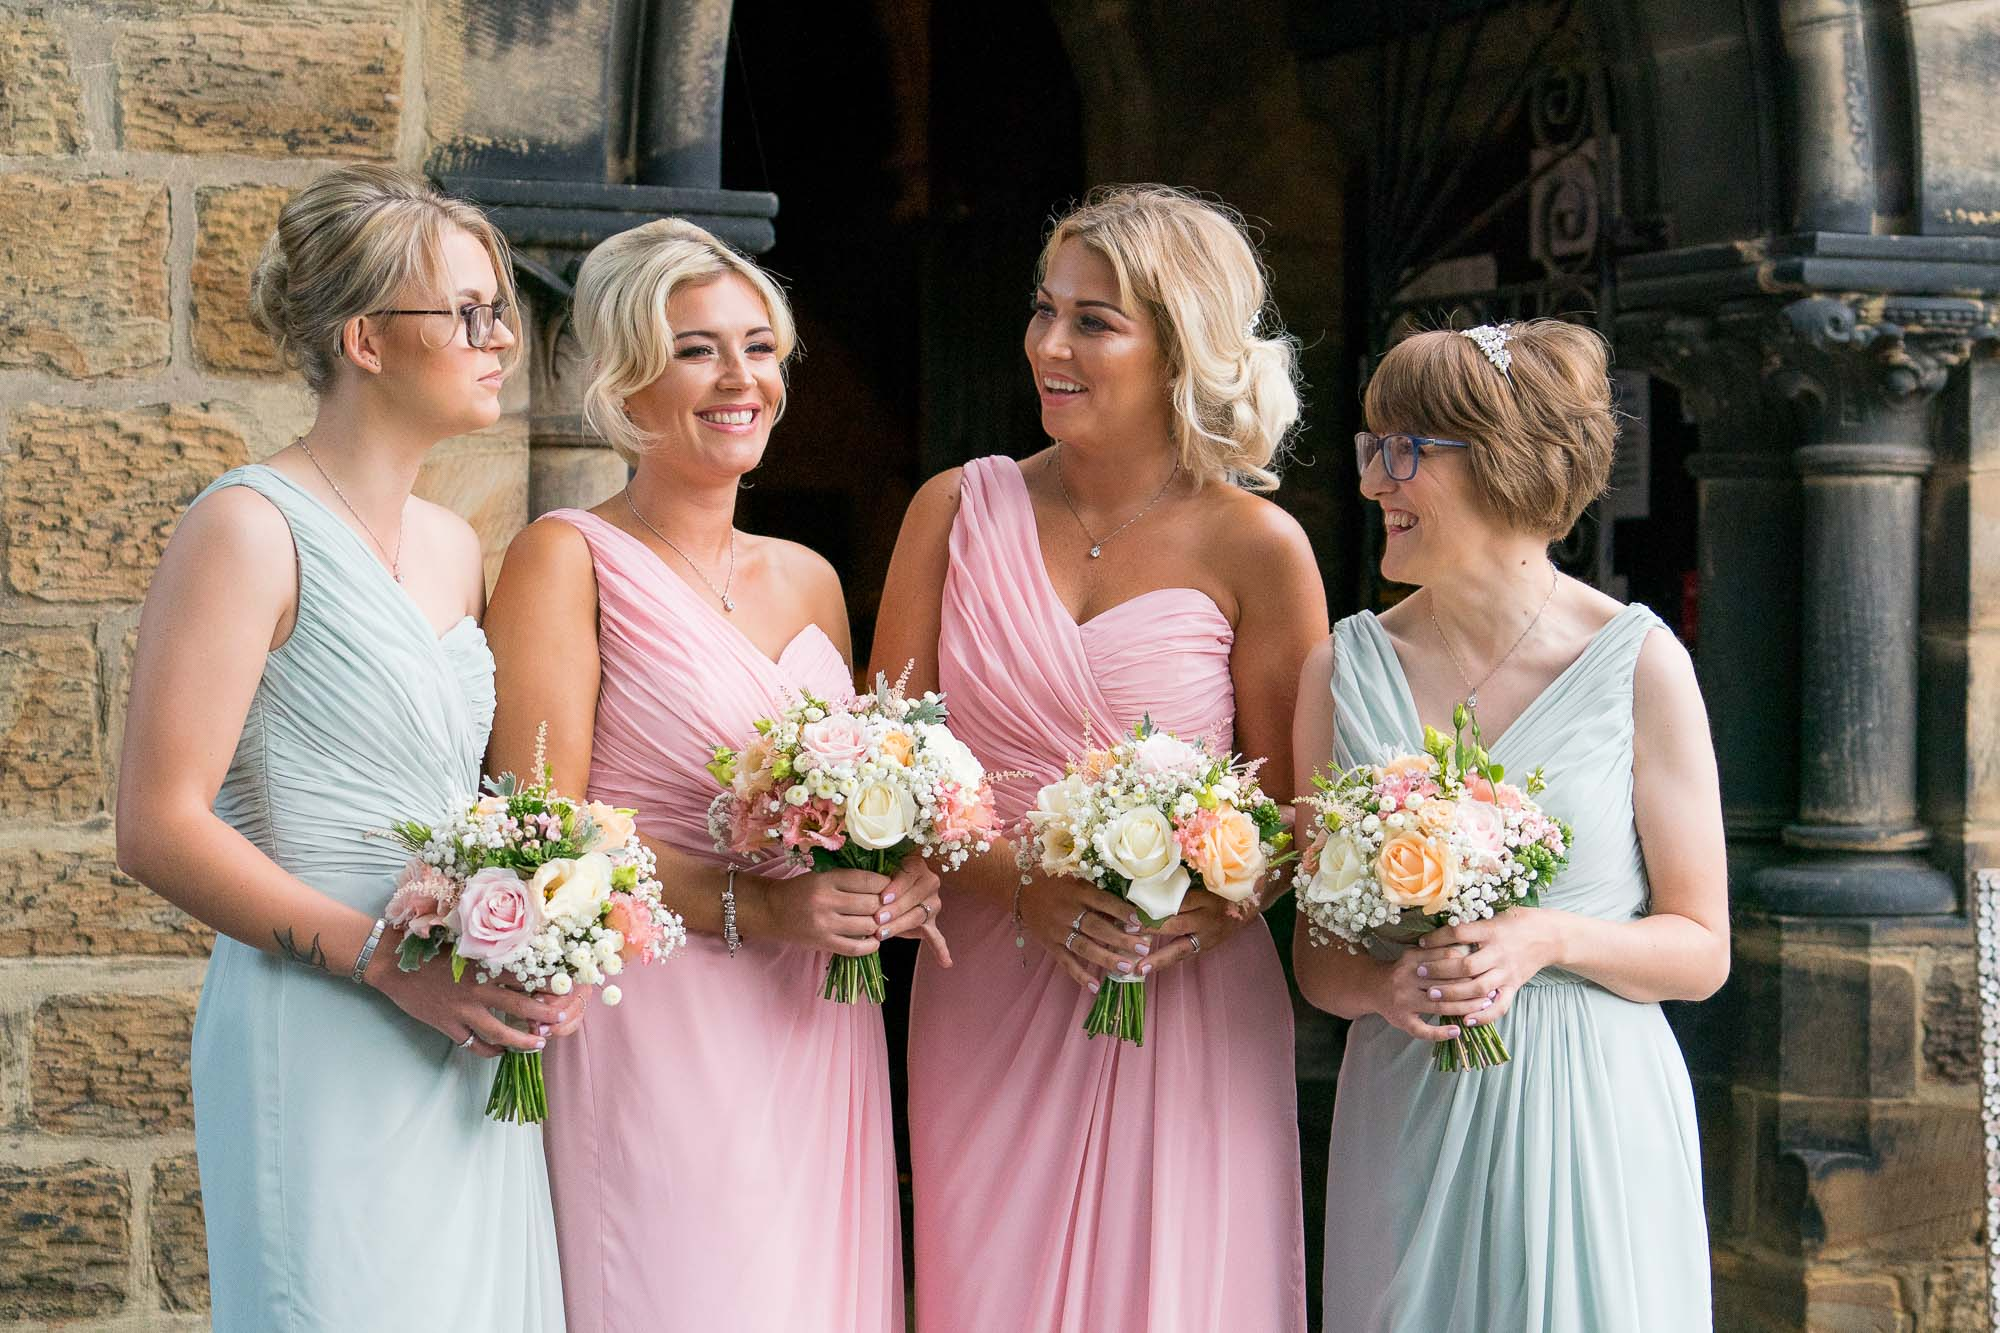 Brides chatting before the ceremony in Castleford